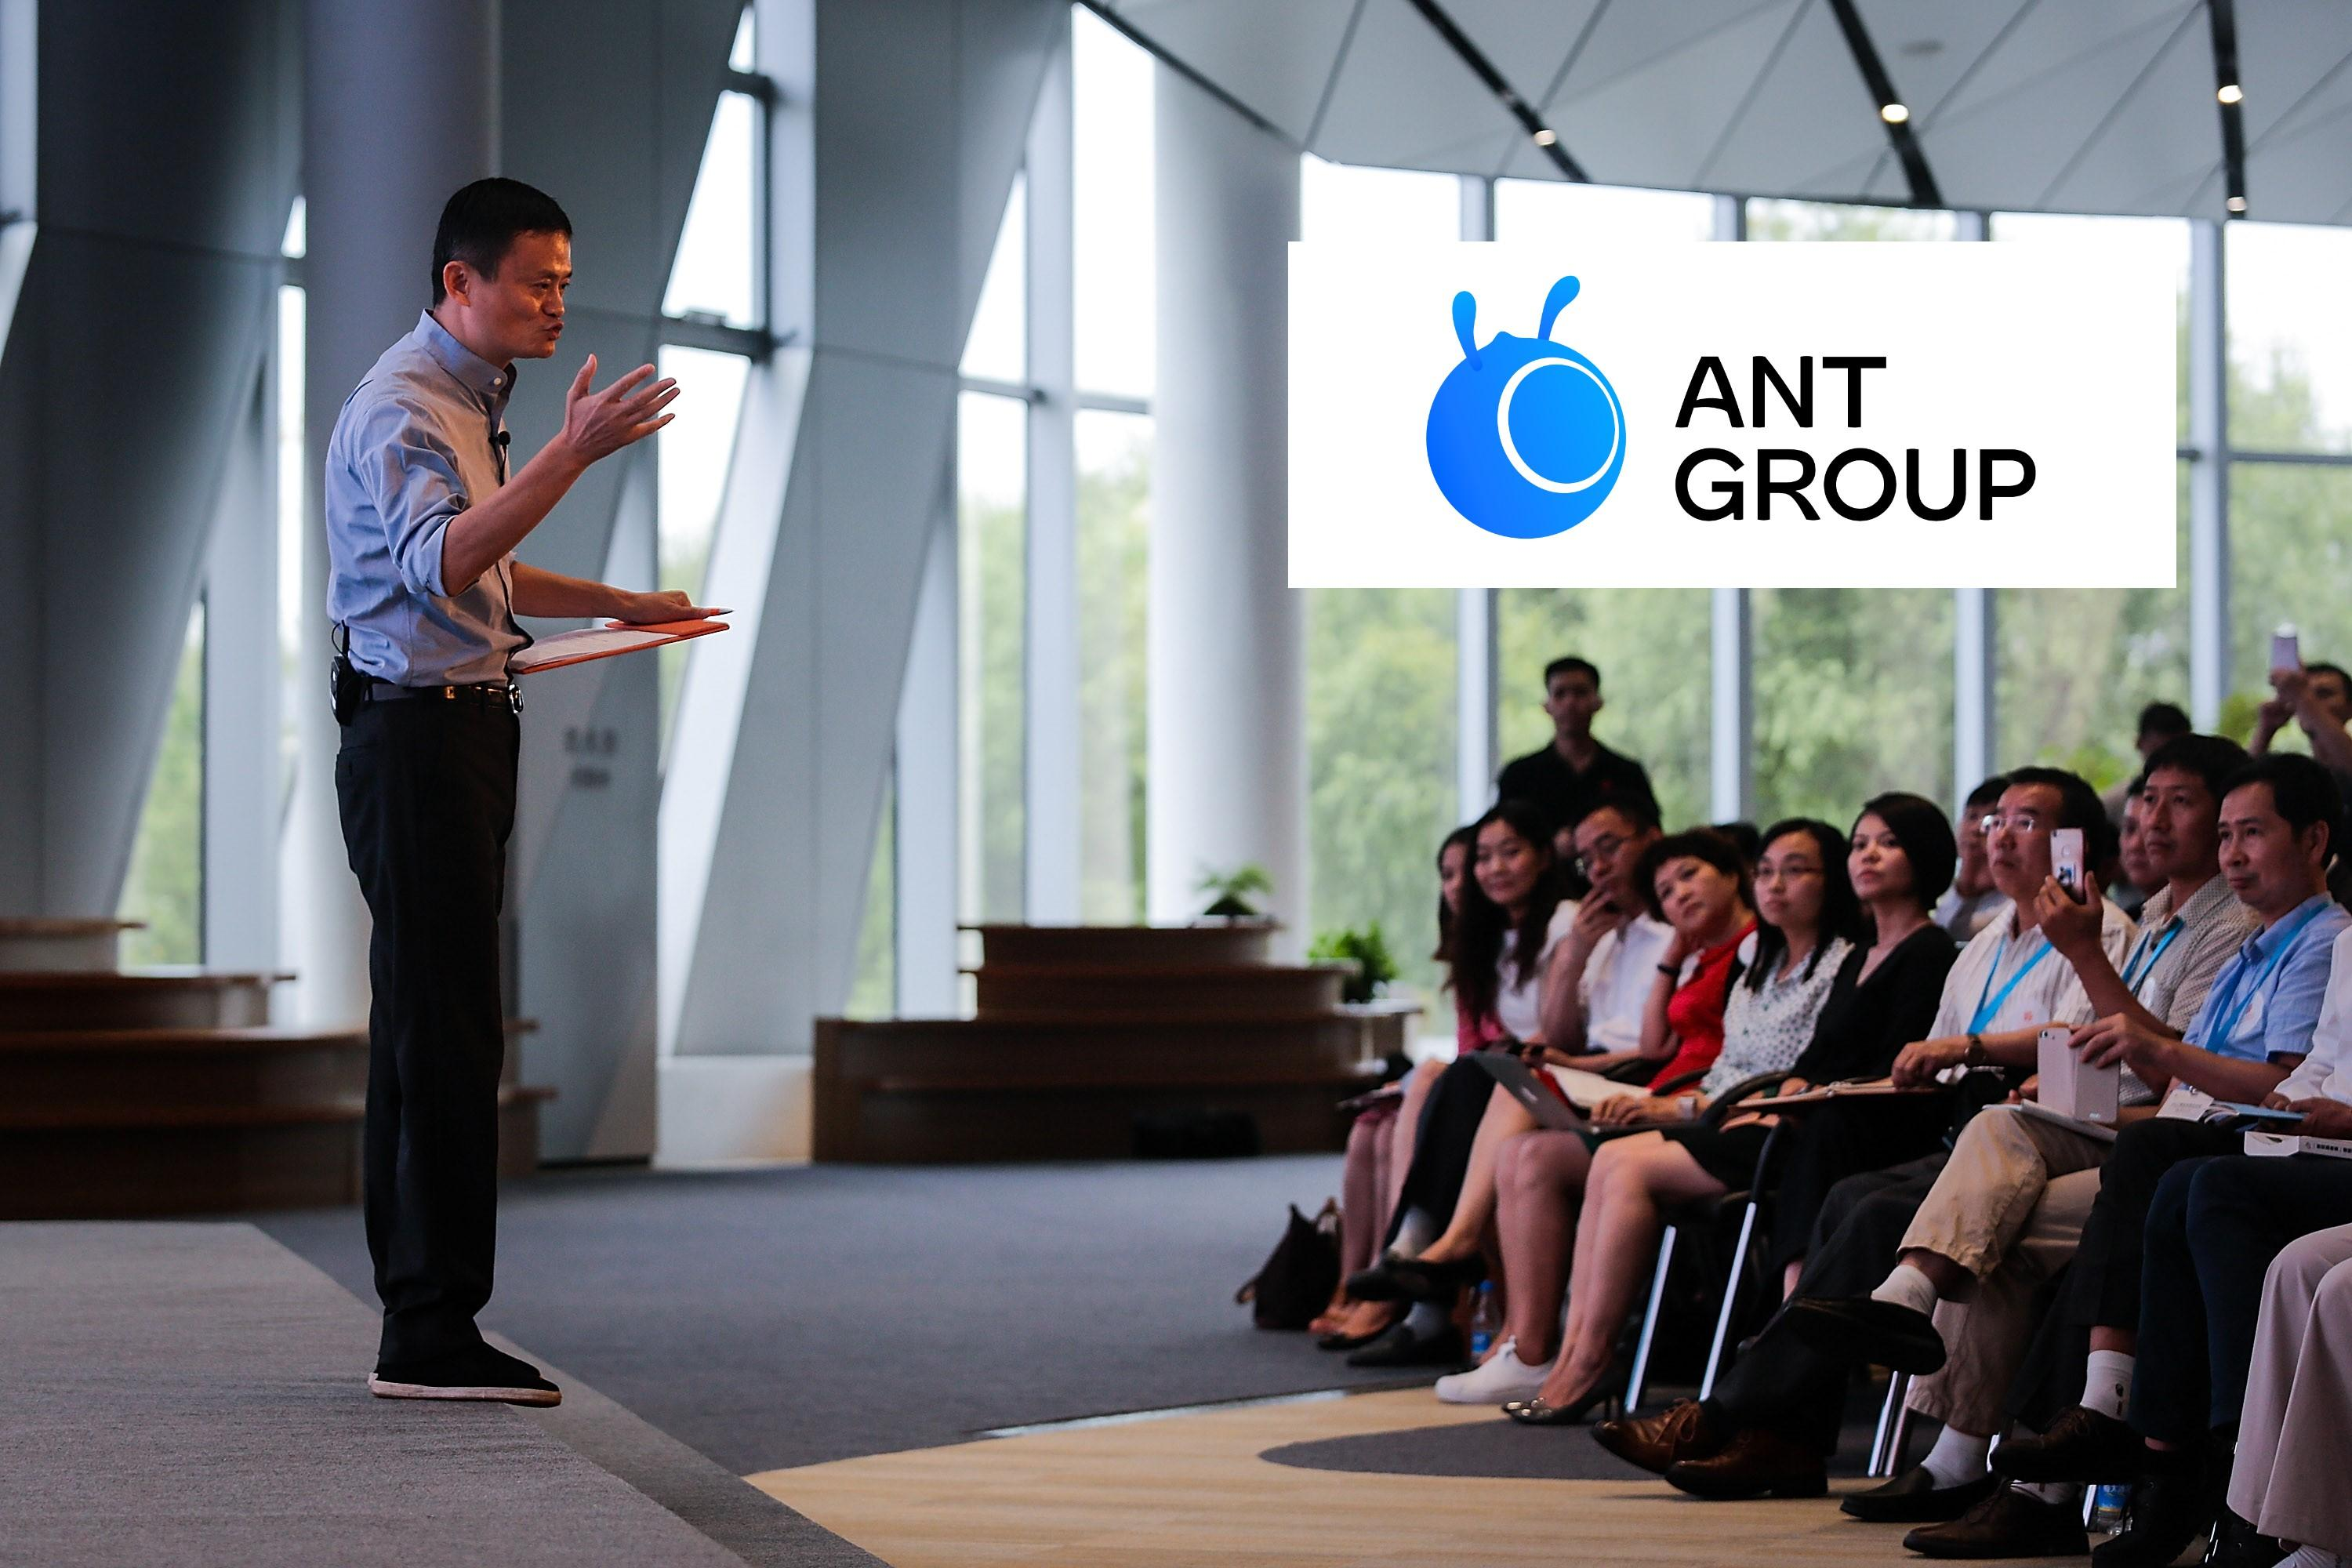 Jack Ma speaking to crowd with Ant Group logo